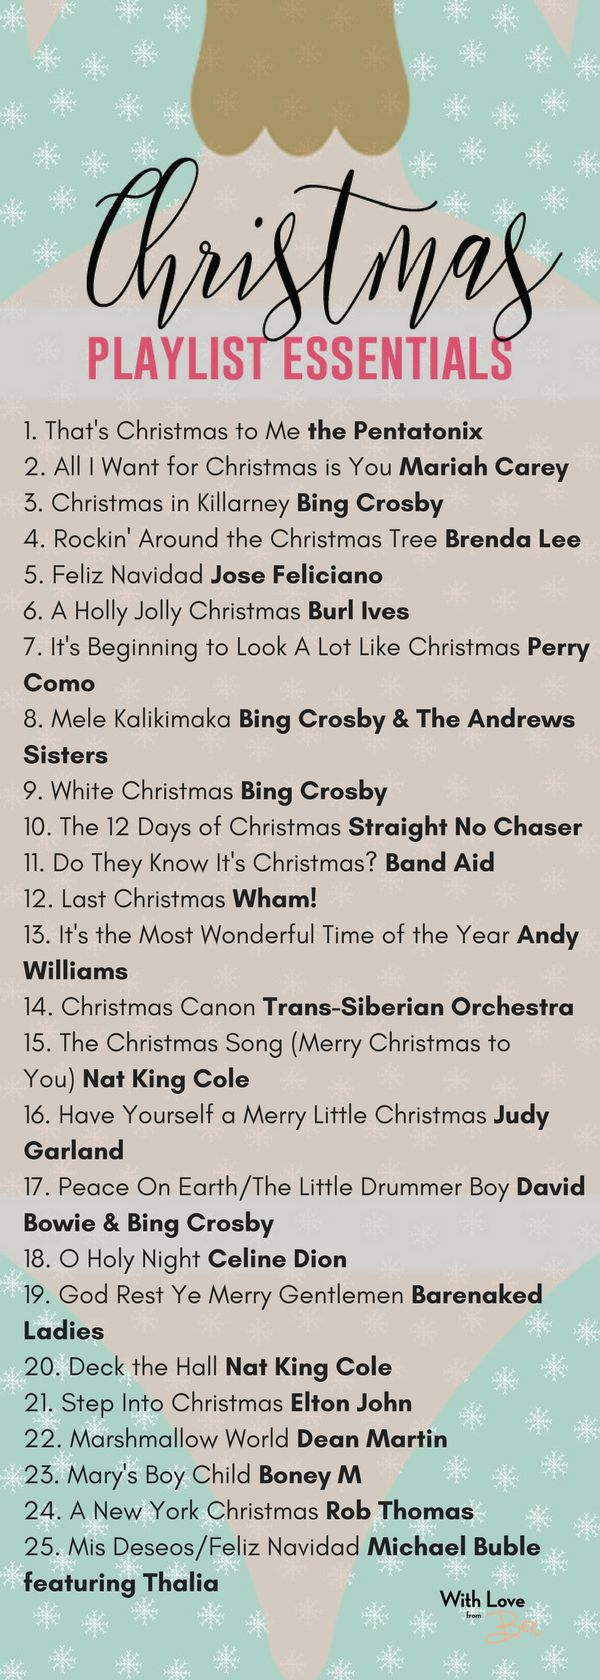 These are the Christmas you absolutely need to add to your playlist!